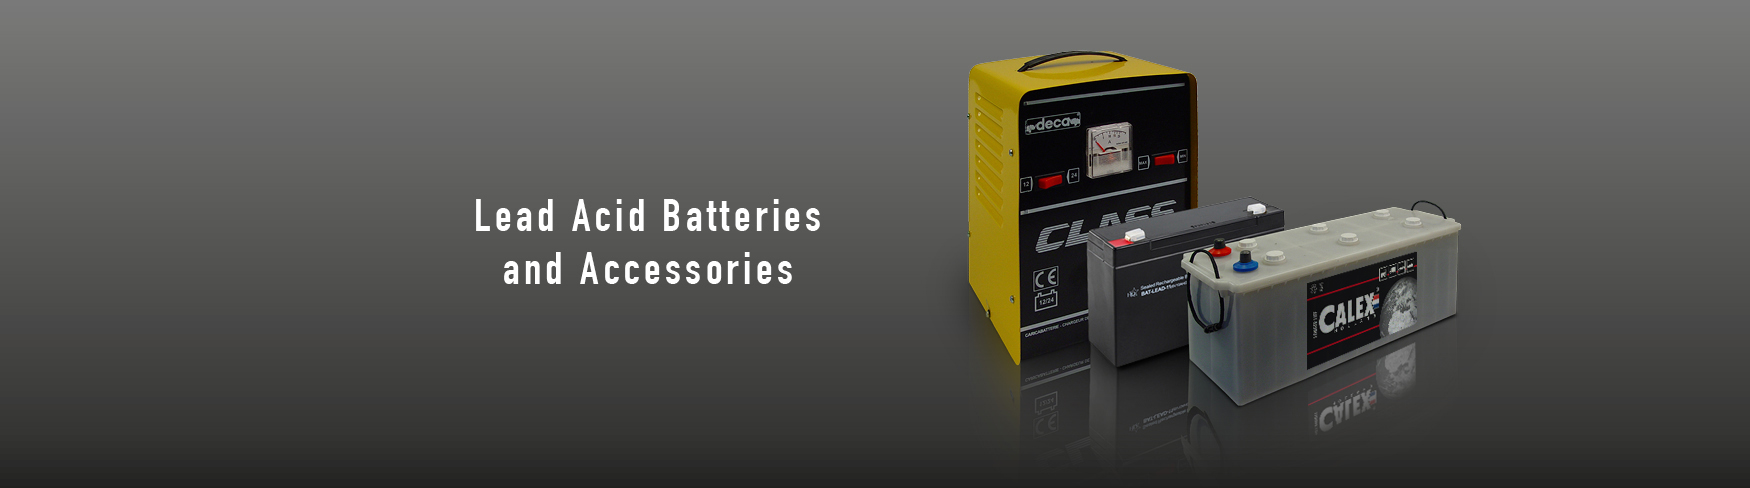 Lead Acid Batteries and Accessories